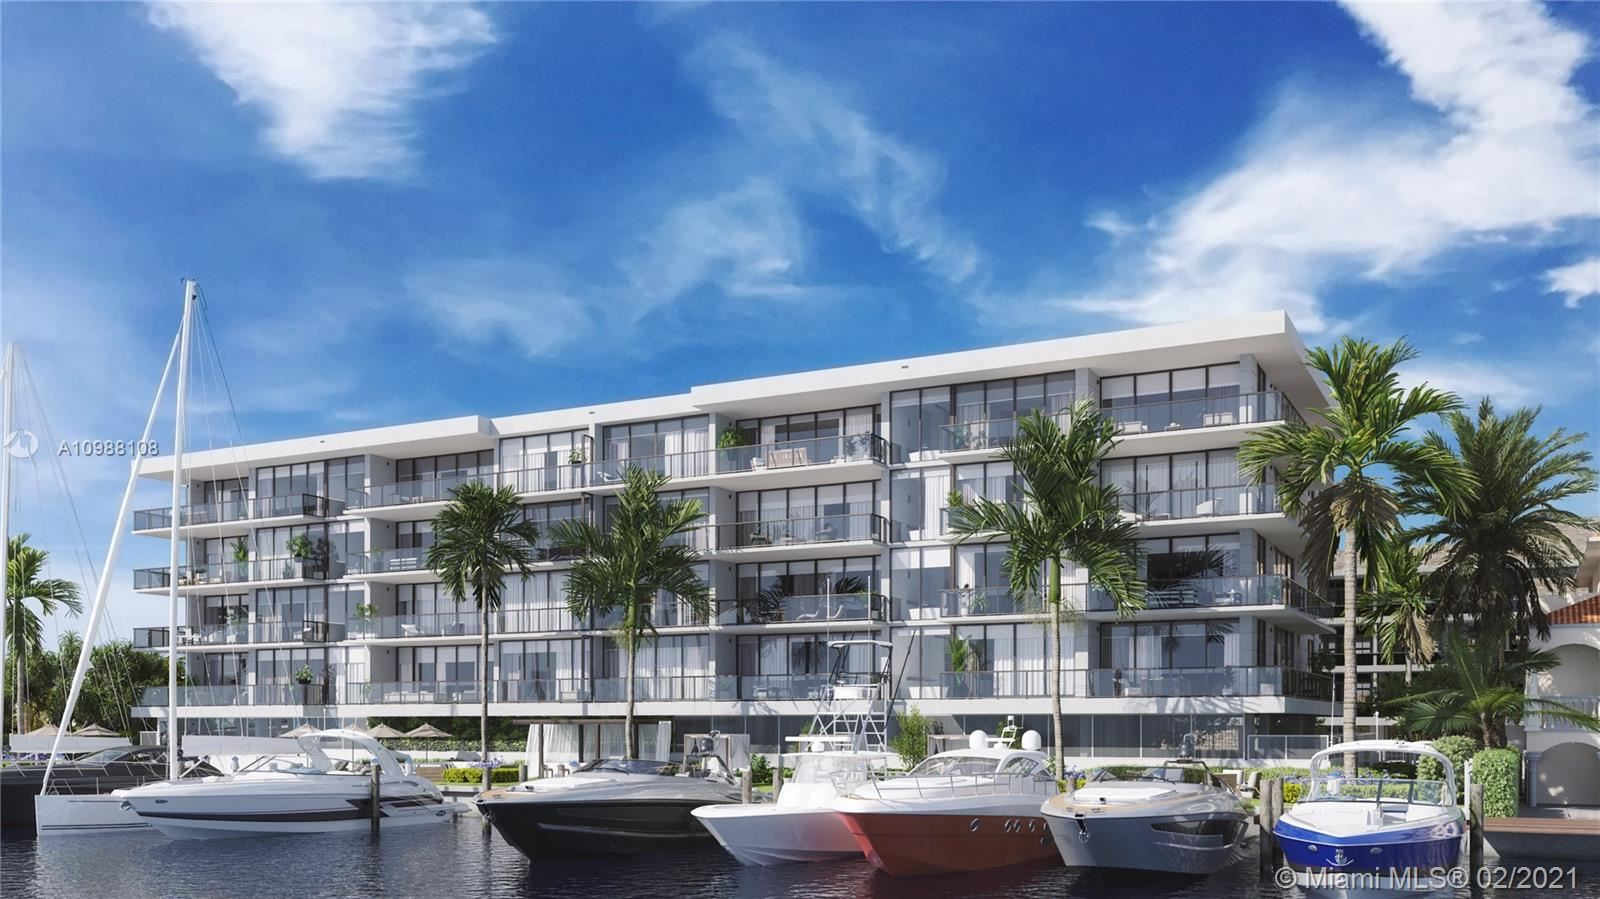 160 Isle Of Venice Dr. #202, Fort Lauderdale, FL 33301 - #: A10988108